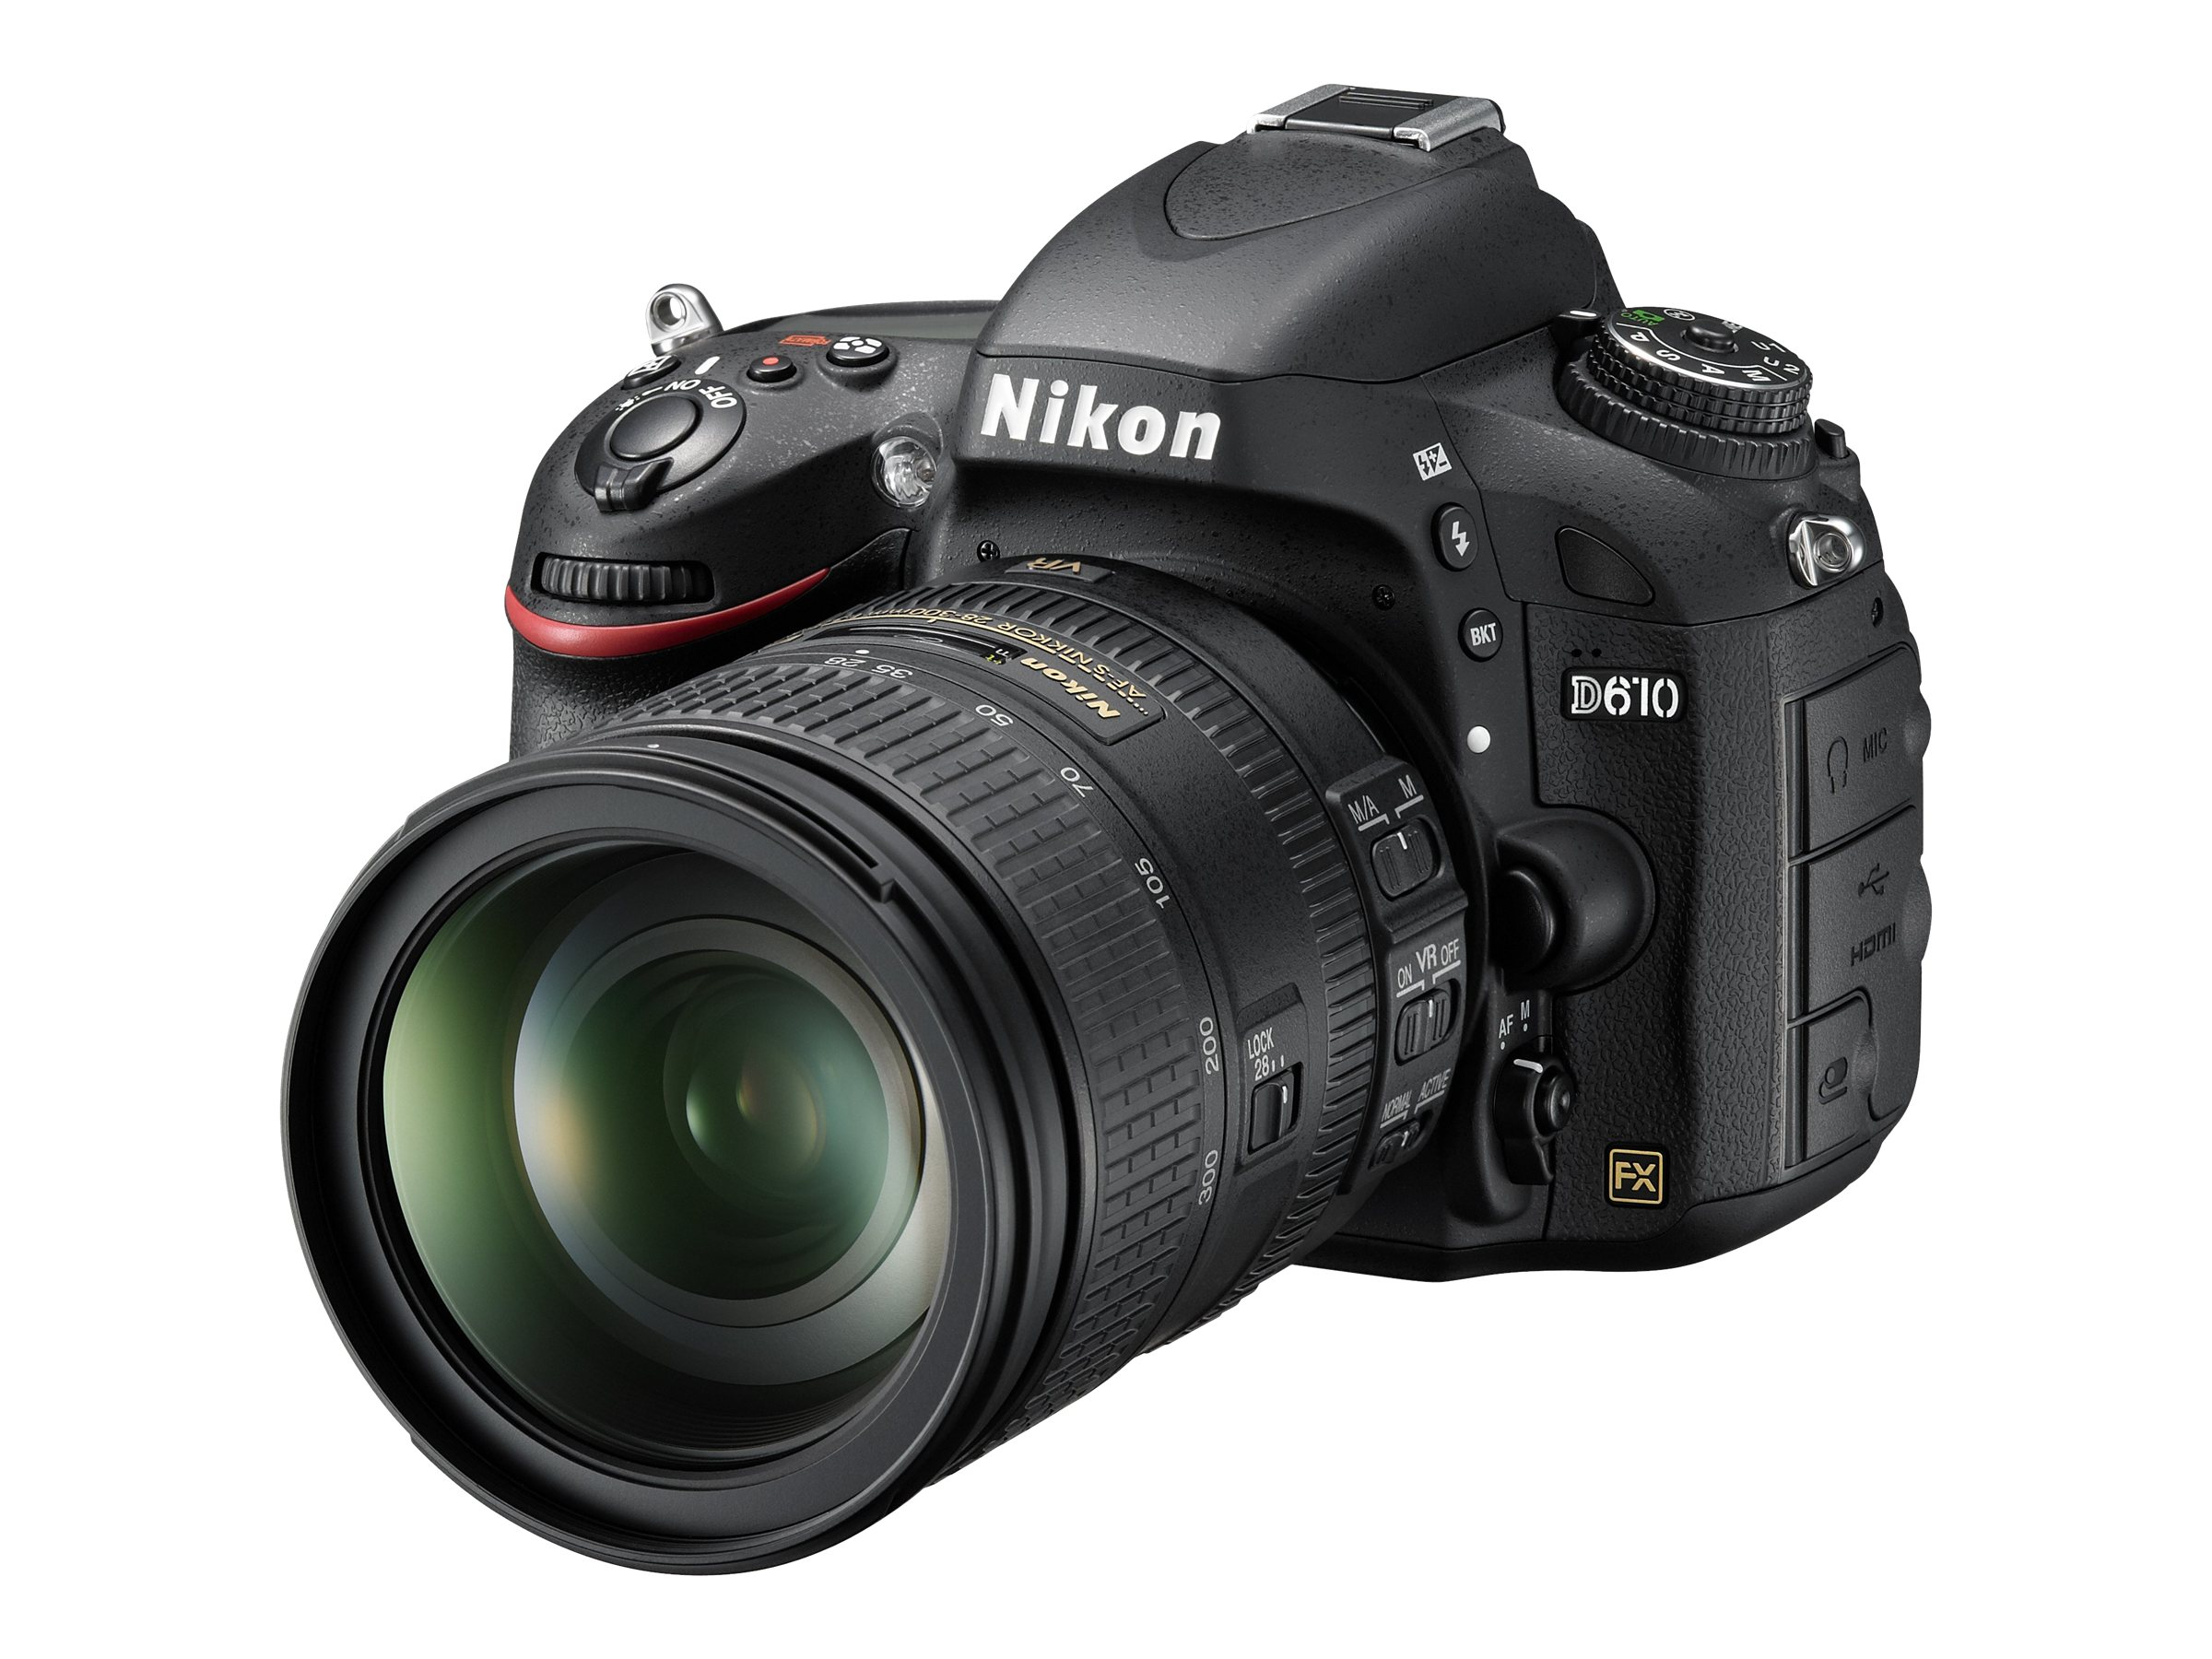 Nikon D610 FX-Format Digital SLR with 28-300mm VR Lens